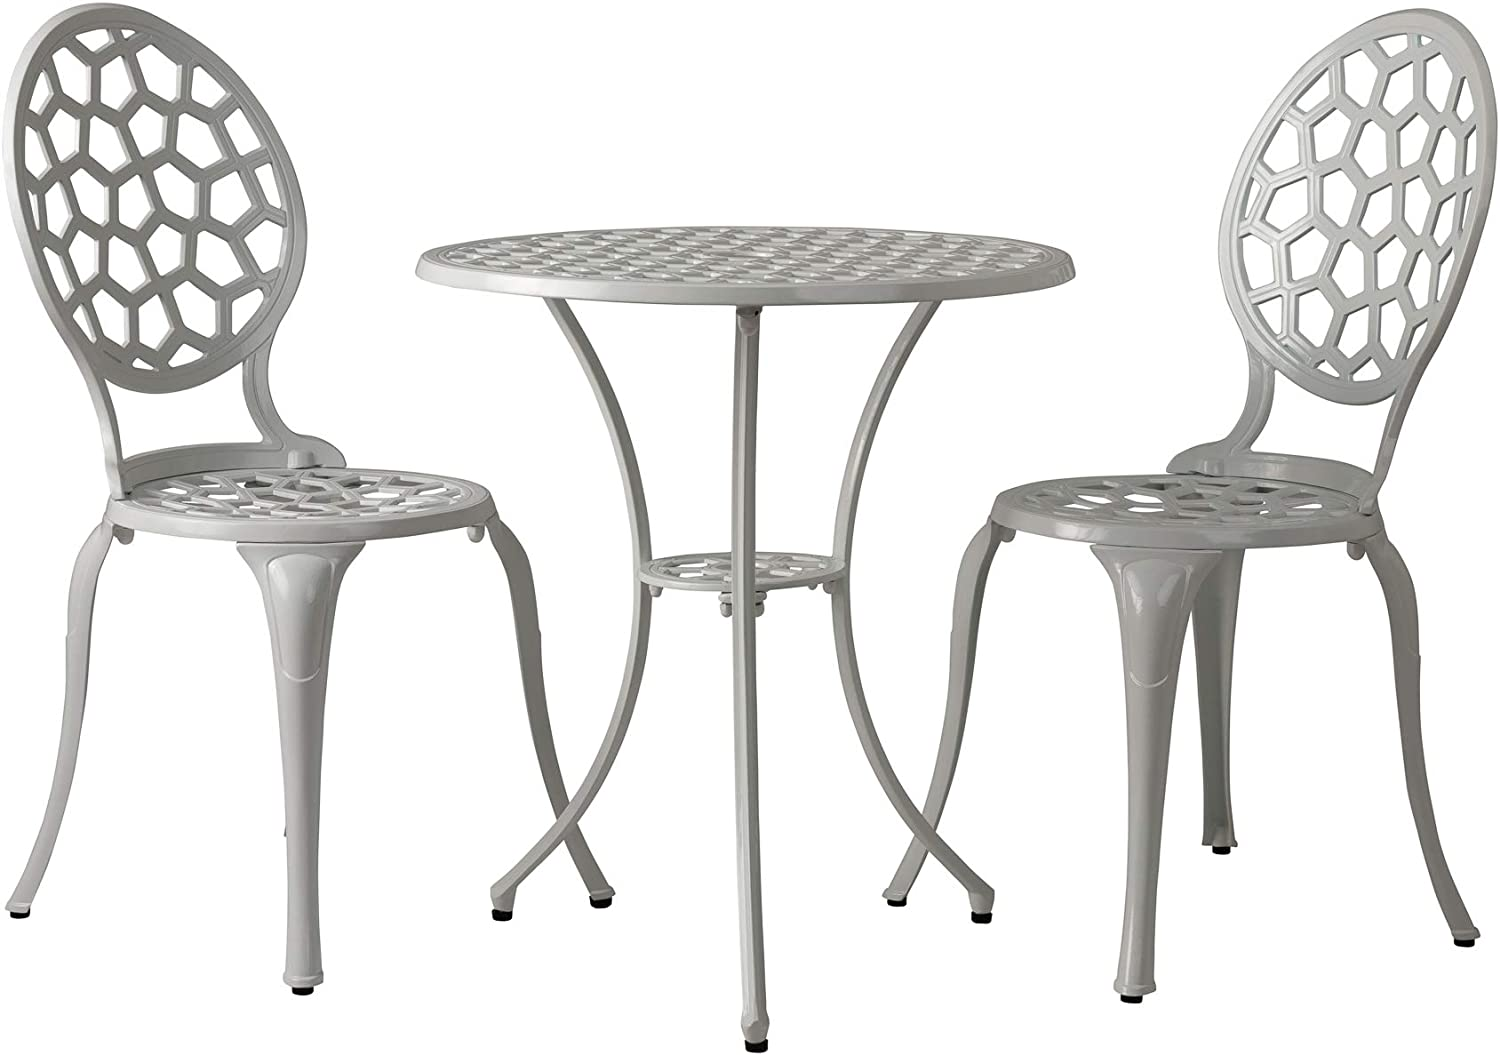 Patio Sense Vashon Bistro Set | 3 Pieces | Round Table and 2 Chairs | Cast Aluminum Construction | Gloss White Finish | Ideal for Outdoor Seating, Porch, Lawn, Garden, Backyard, Pool, Deck, Balcony : Patio, Lawn & Garden